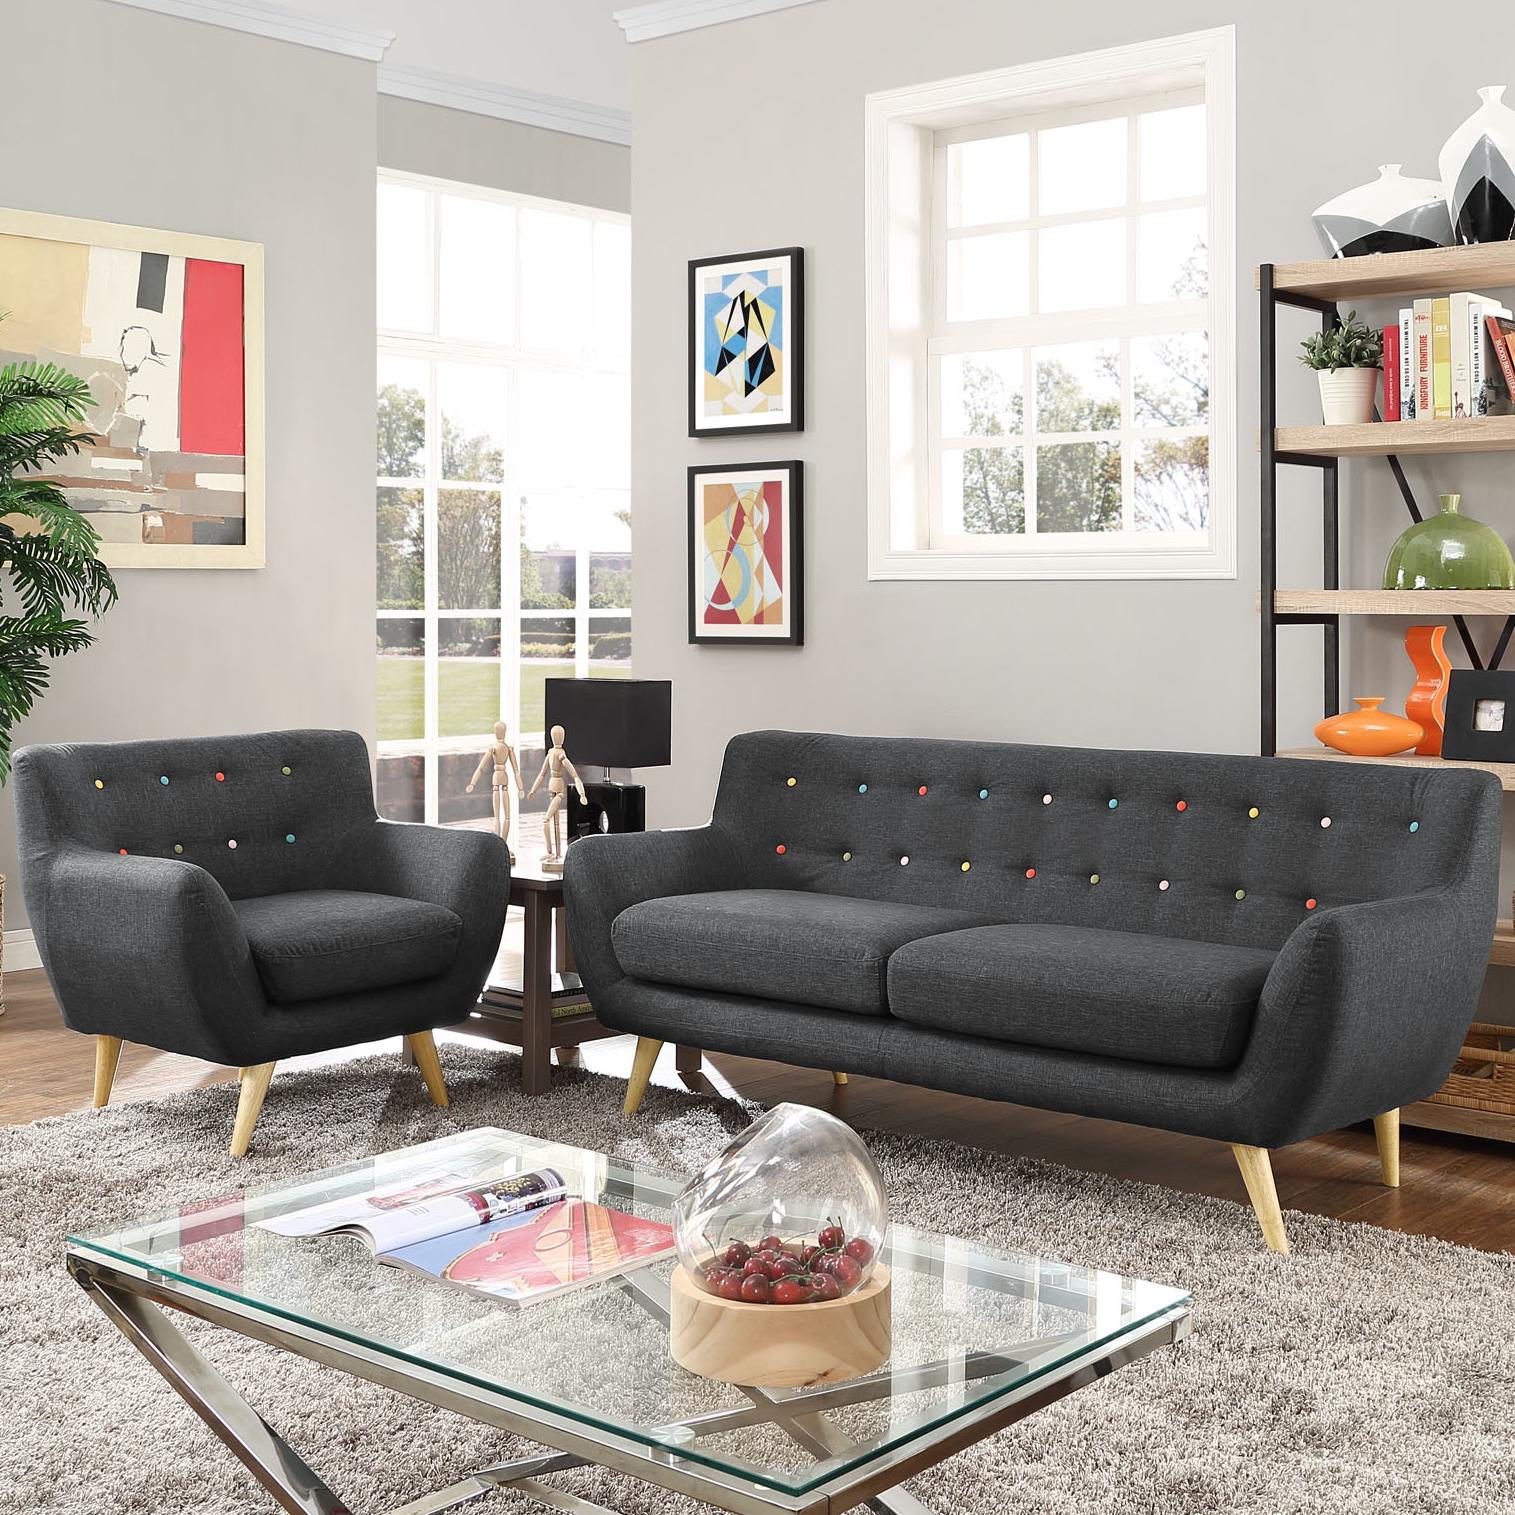 Modern Living Room Furniture – storiestrending.com